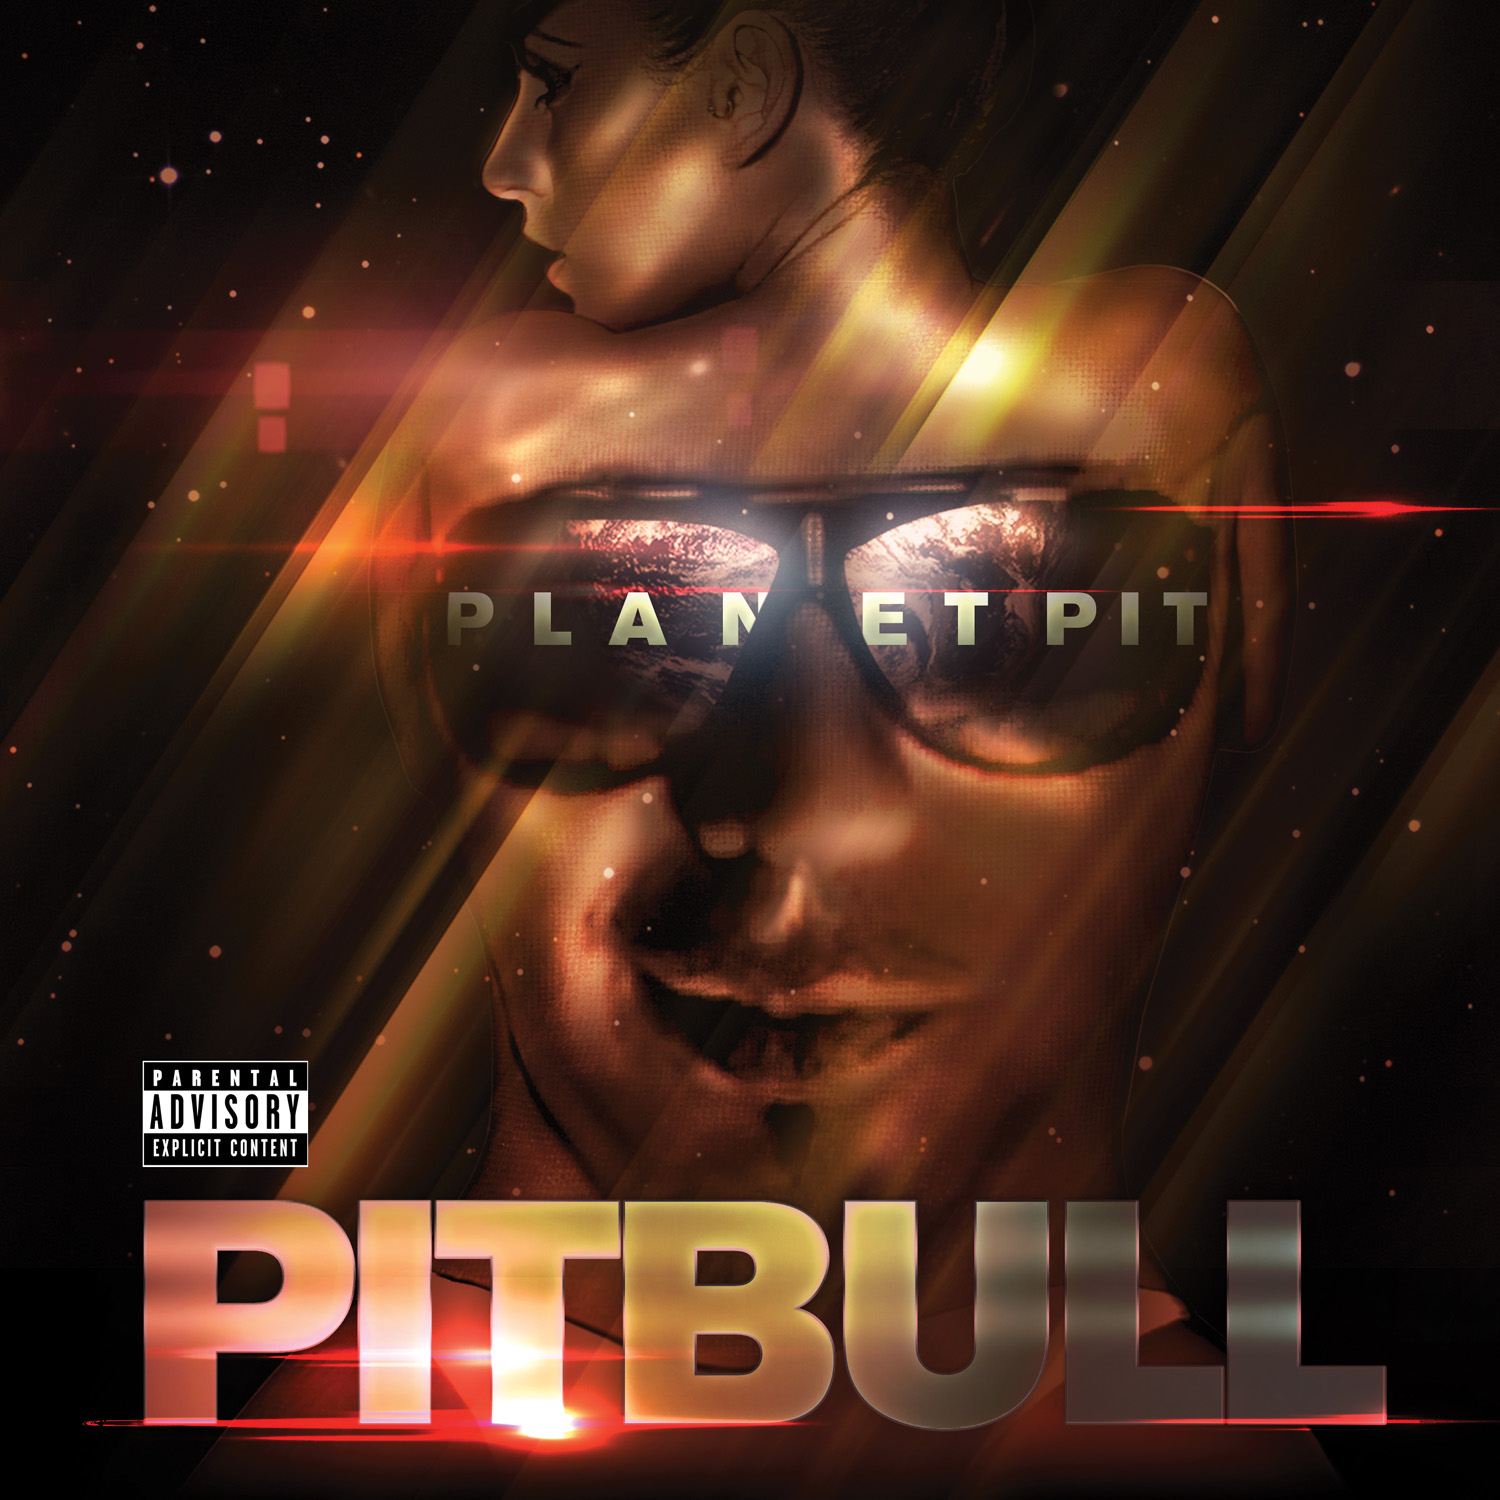 Susanlovemusic exclusiva pitbull planet pit deluxe for 16th floor paul kelly